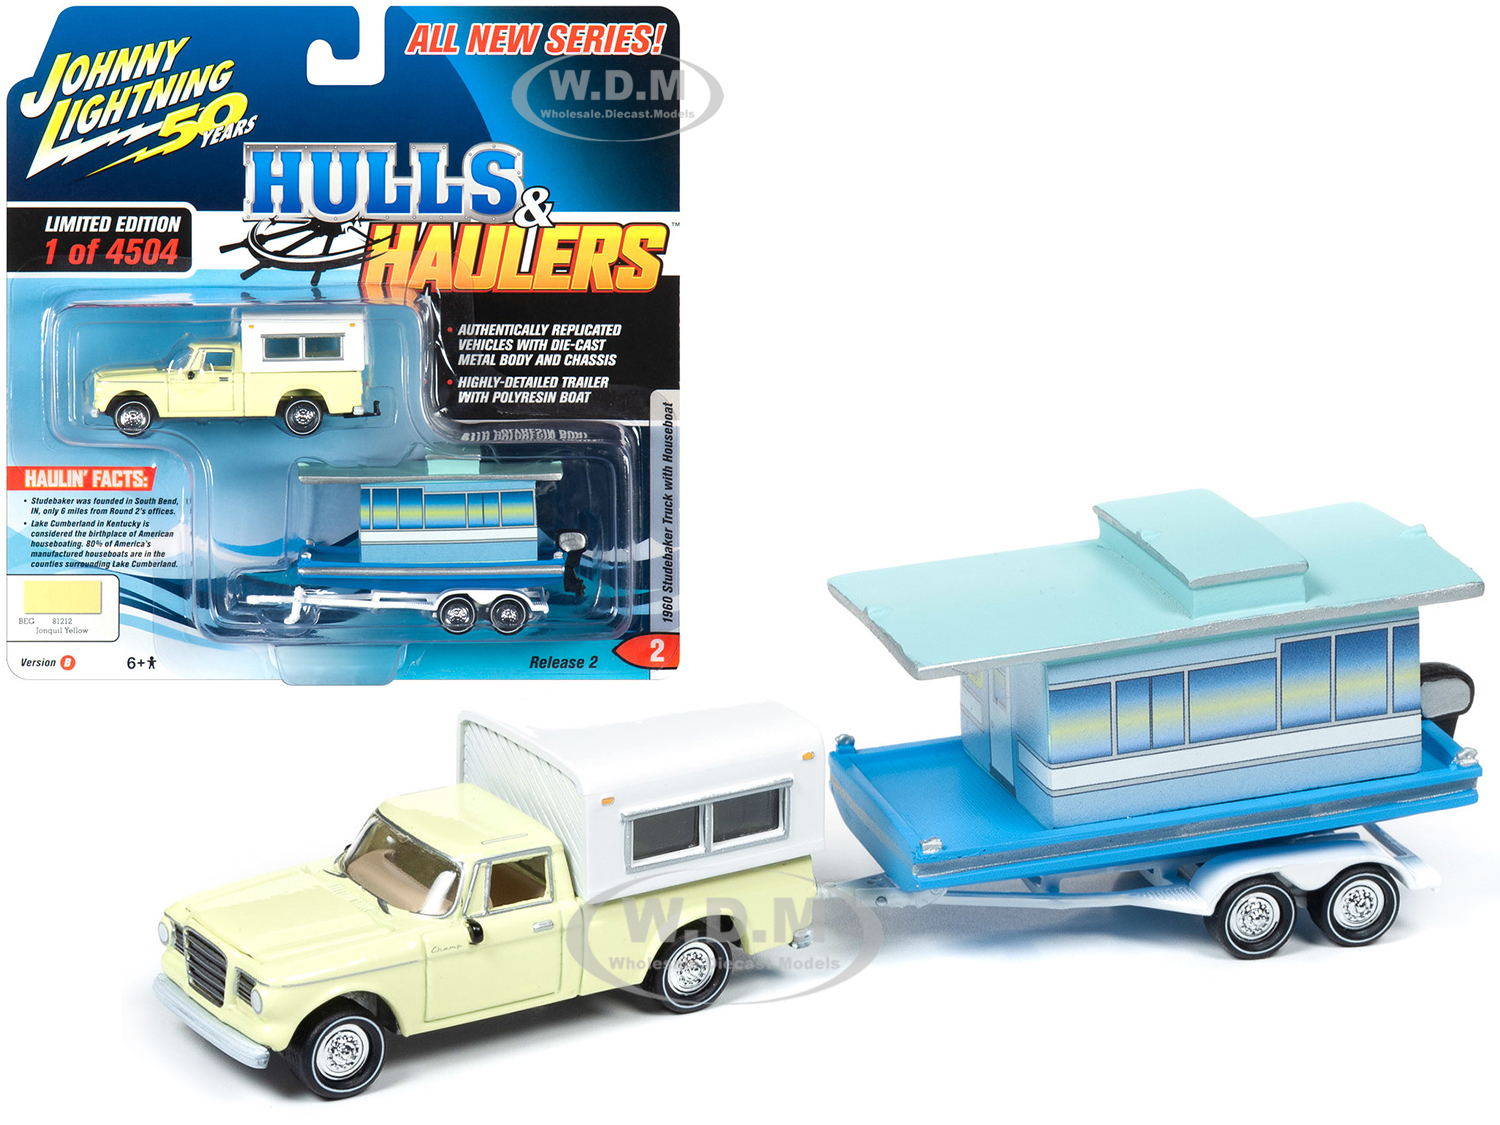 1960 Studebaker Pickup Truck with Camper Shell Jonquil Yellow with Houseboat Limited Edition to 4504 pieces Worldwide